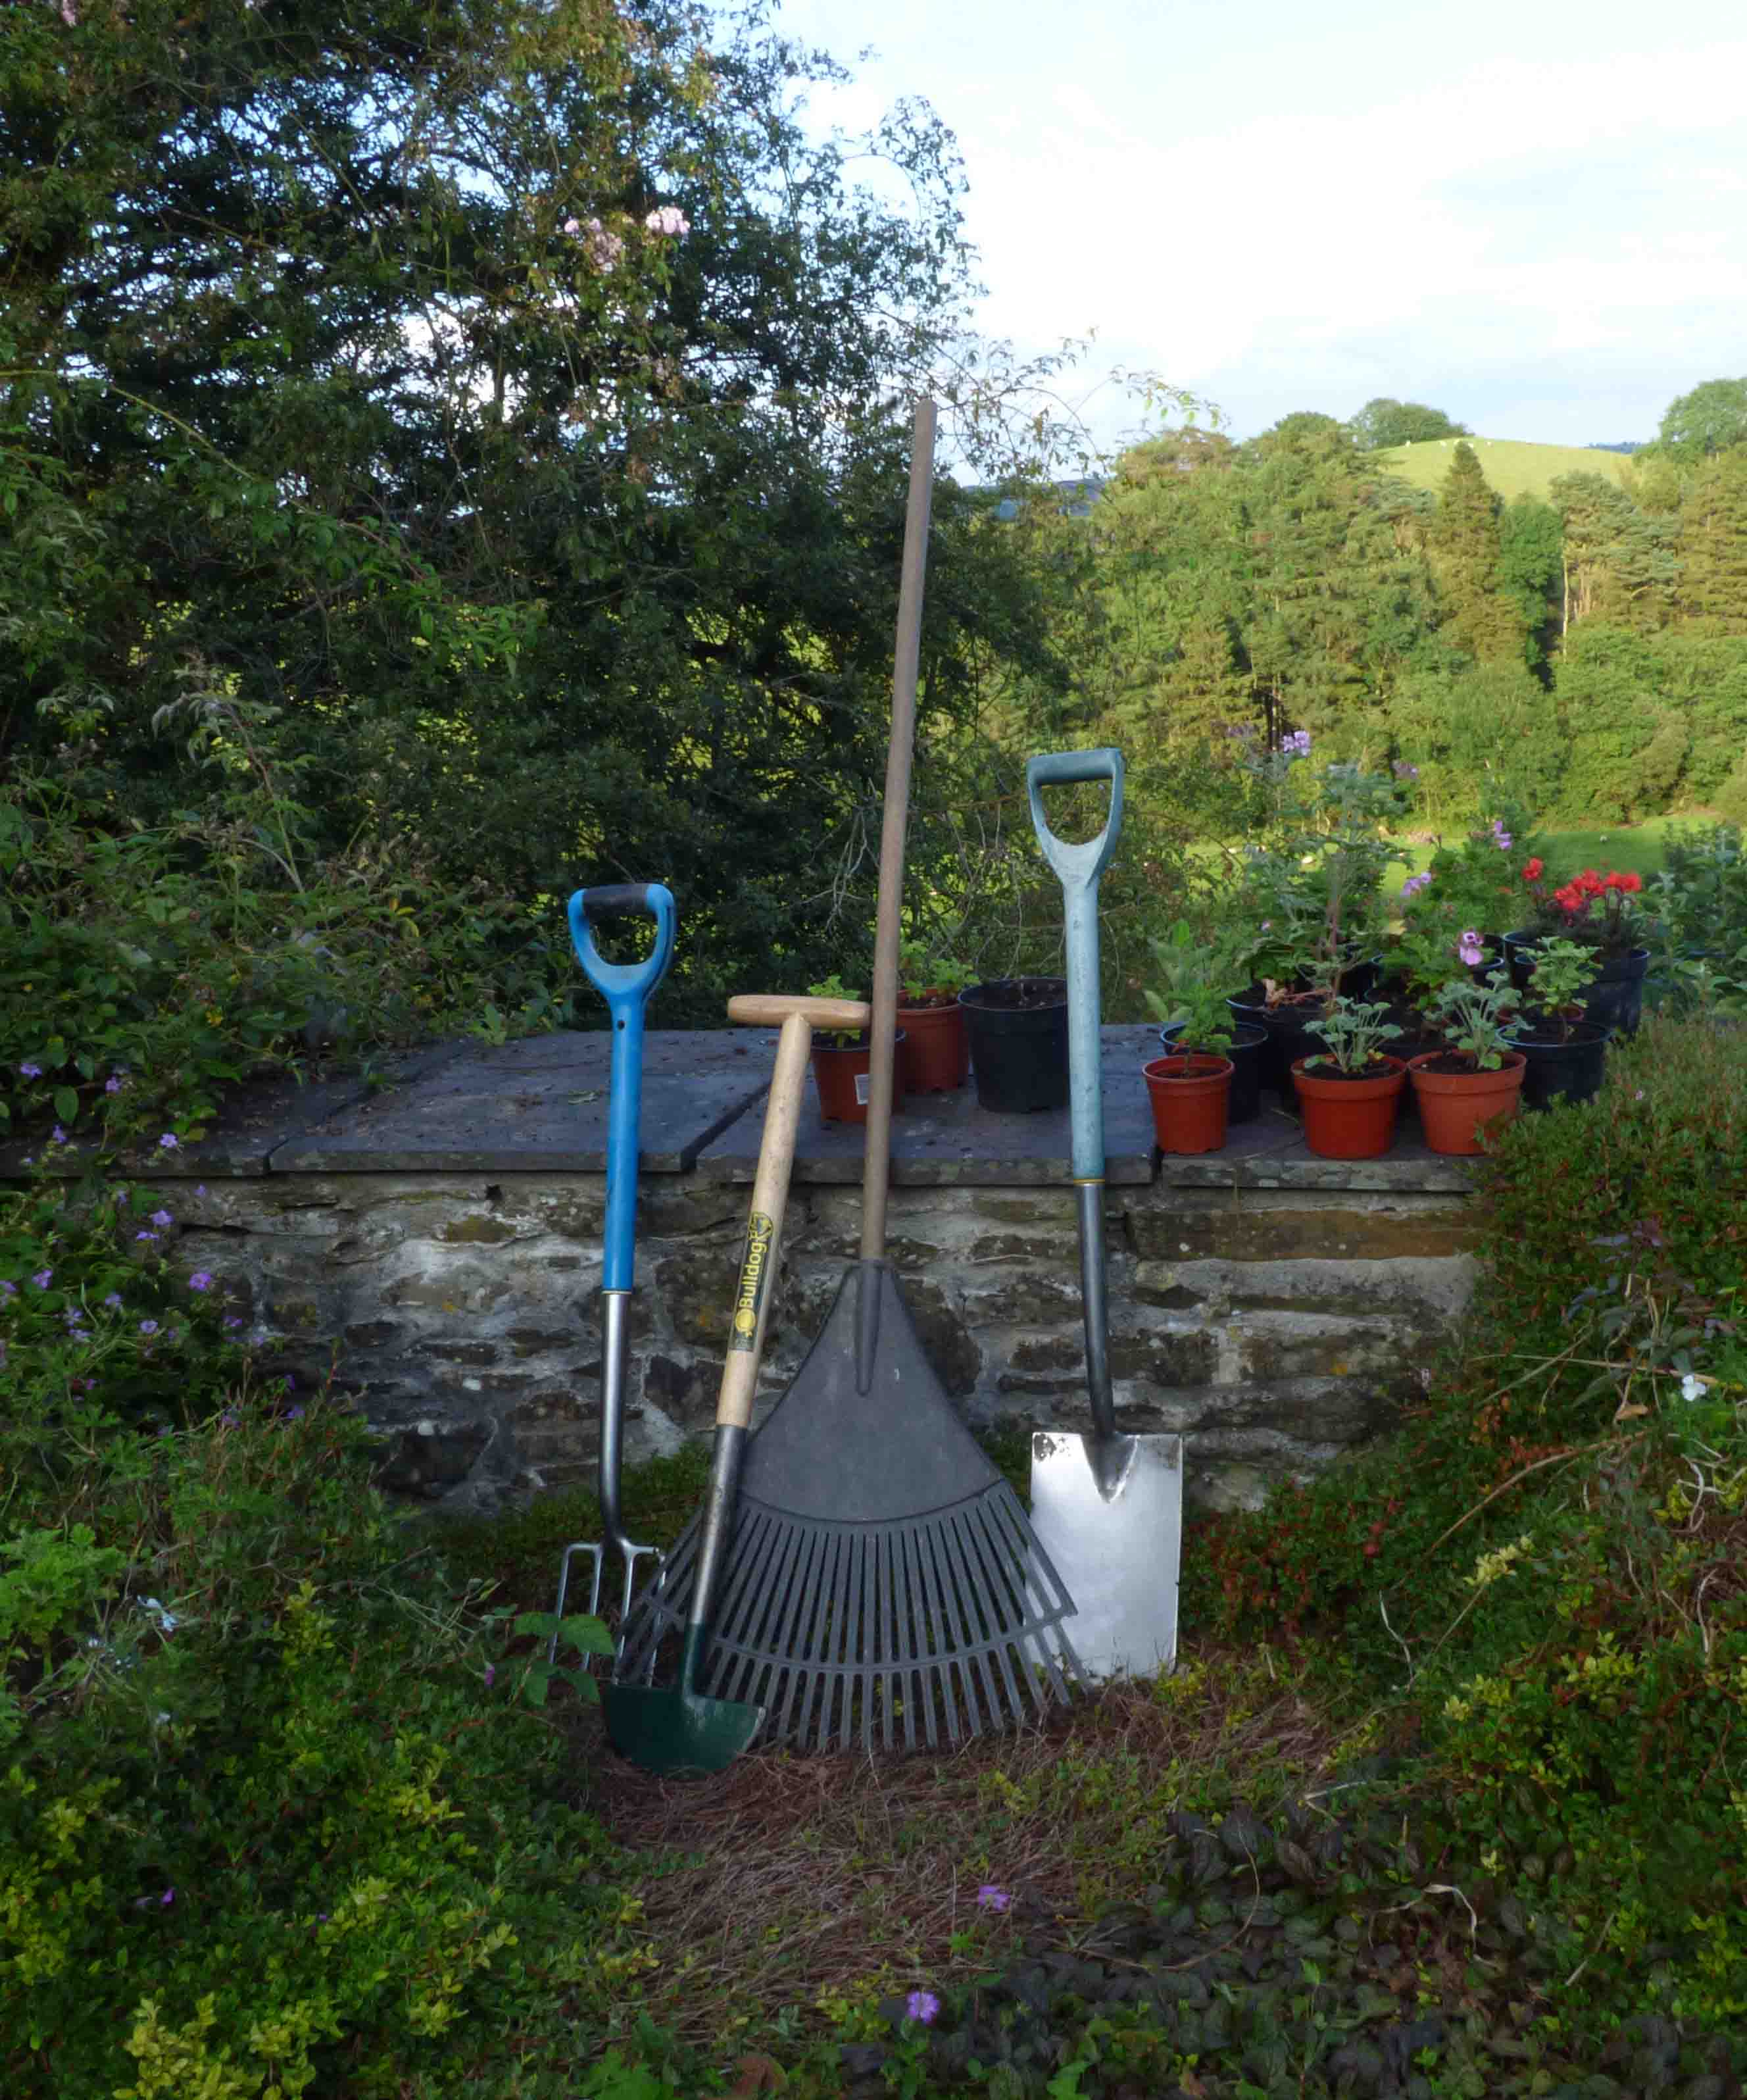 Gardens By Maria: How Gardening Promotes Physical And Mental Health By Maria